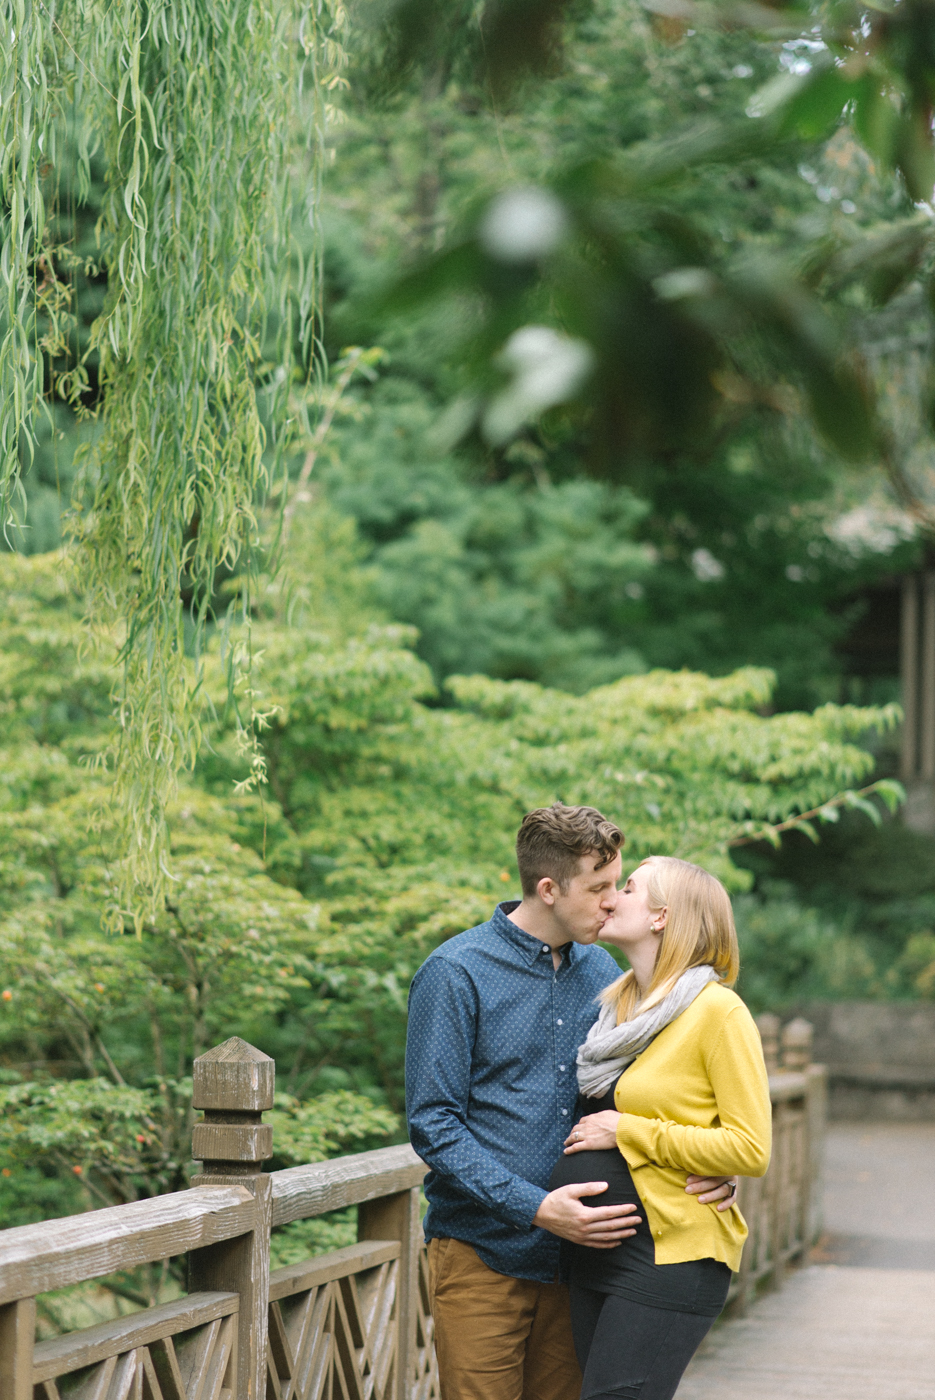 portland-oregon-maternity-photography-pregnancy-crystal-springs-rhododendron-garden-kiss-sweet-romantic-bridge-weeping-willow-shelley-marie-photo-5